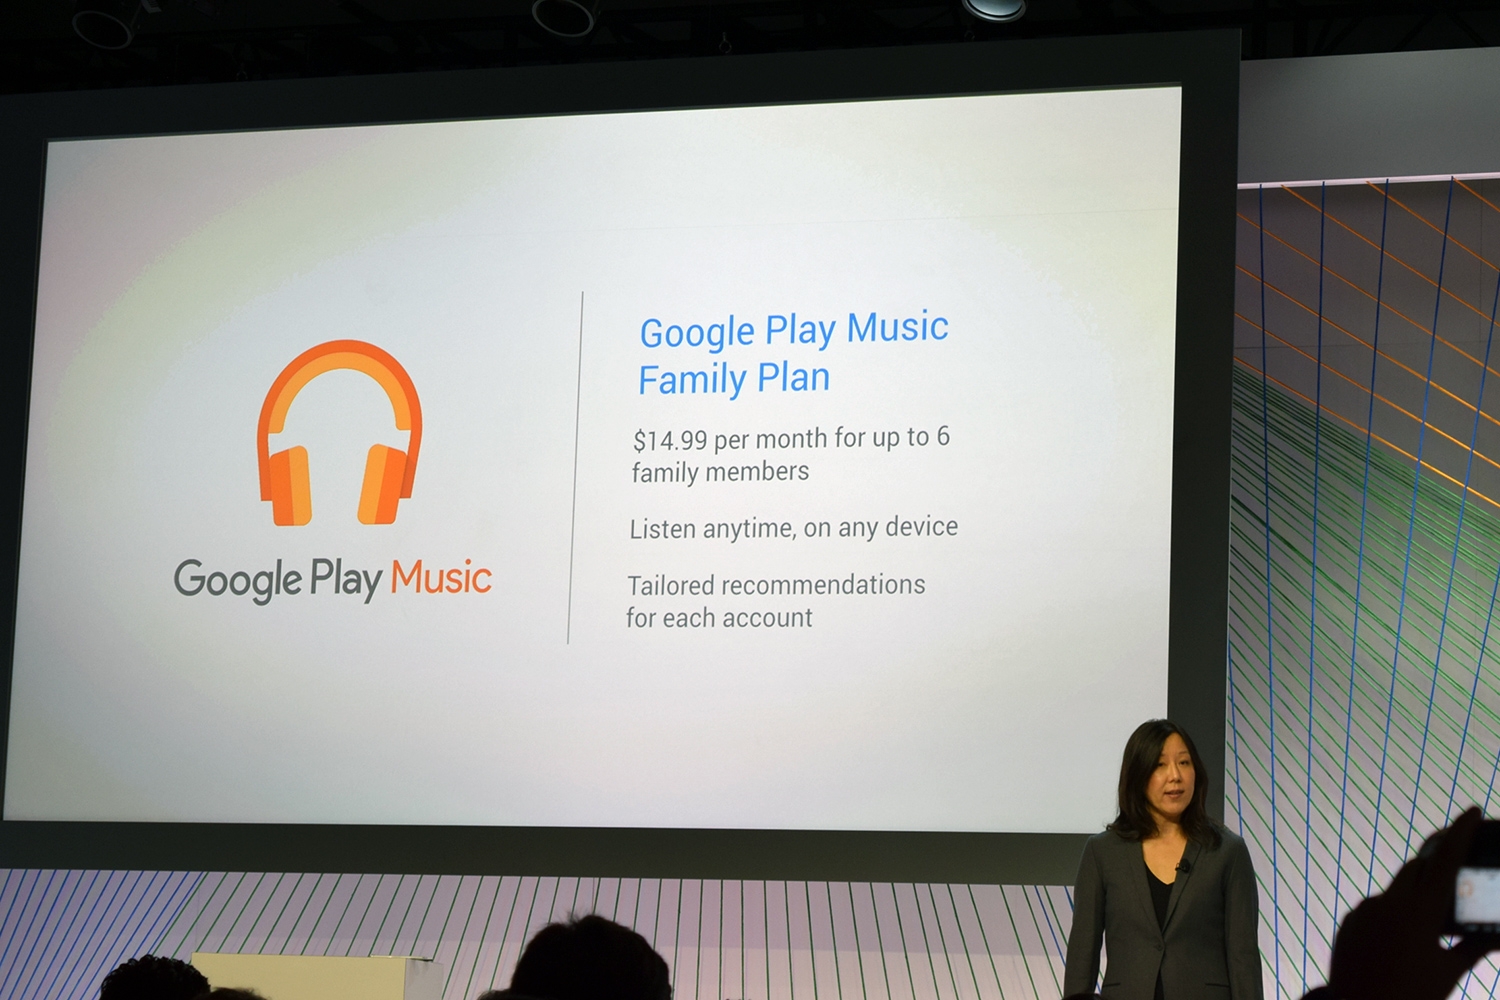 Google adds family plan to Google Play Music